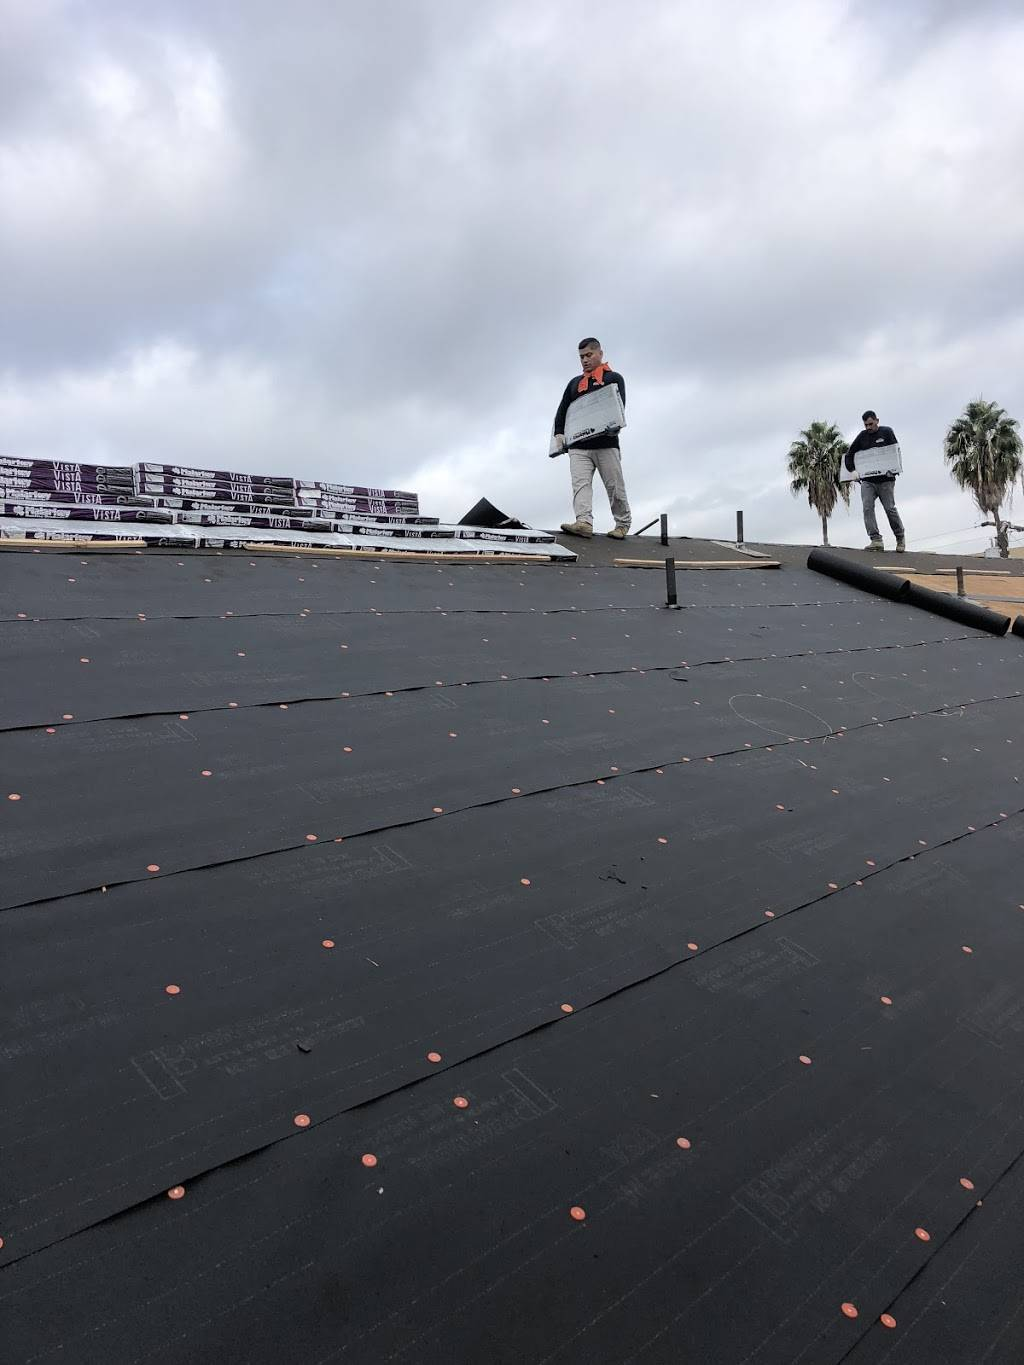 Ayon's Roofing - roofing contractor  | Photo 4 of 8 | Address: 1713 E Sycamore St, Anaheim, CA 92805, USA | Phone: (714) 944-3340